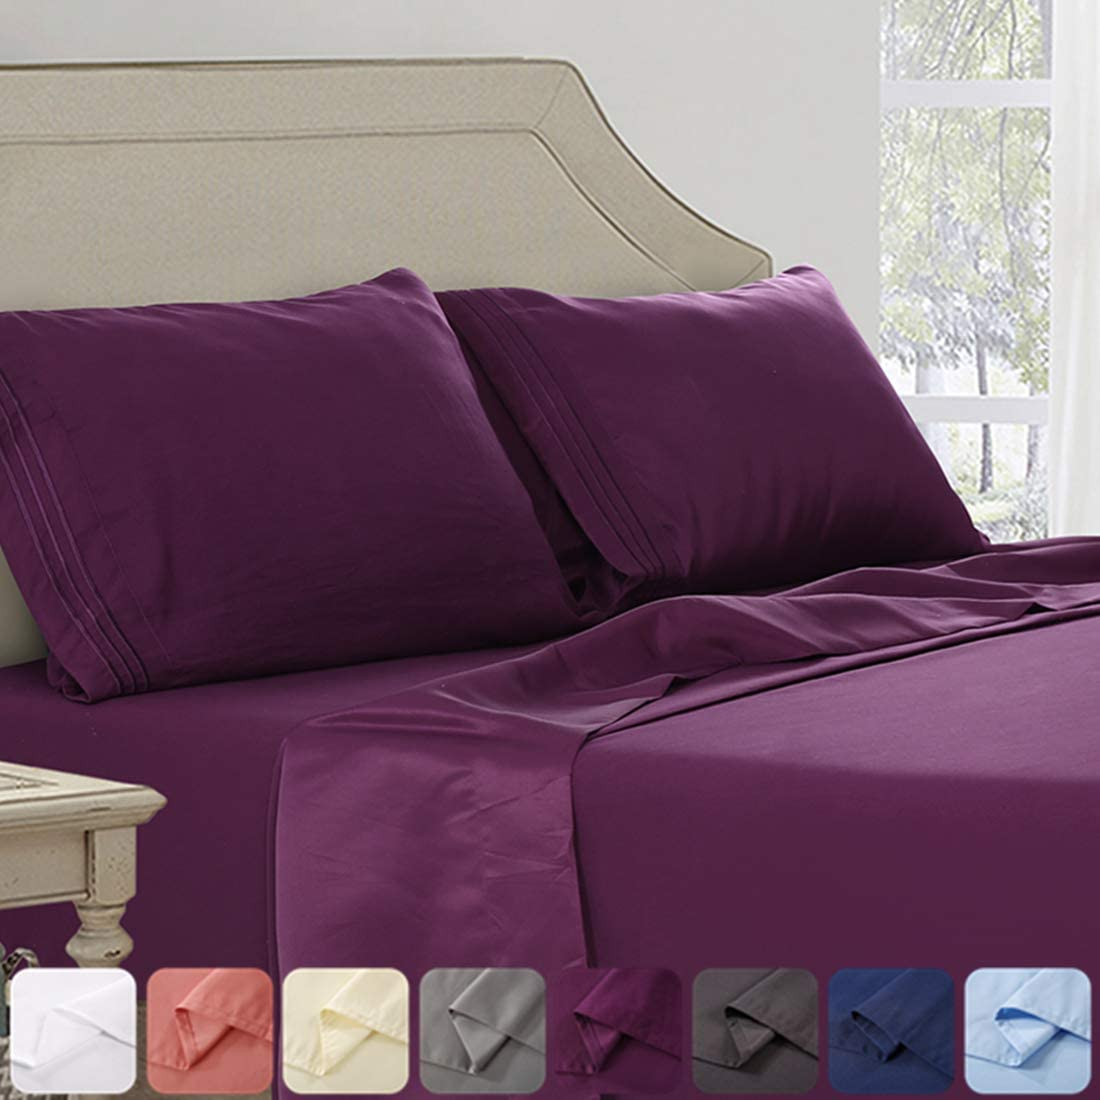 ABAKAN Bed Sheet Set Cal King Size Super Soft 4 Piece Bedding Sheet Smooth Microfiber 1800 Thread Count Luxury Premium Cooling Sheets Breathable Fade Resistant Deep Pocket (Cal King, Purple)